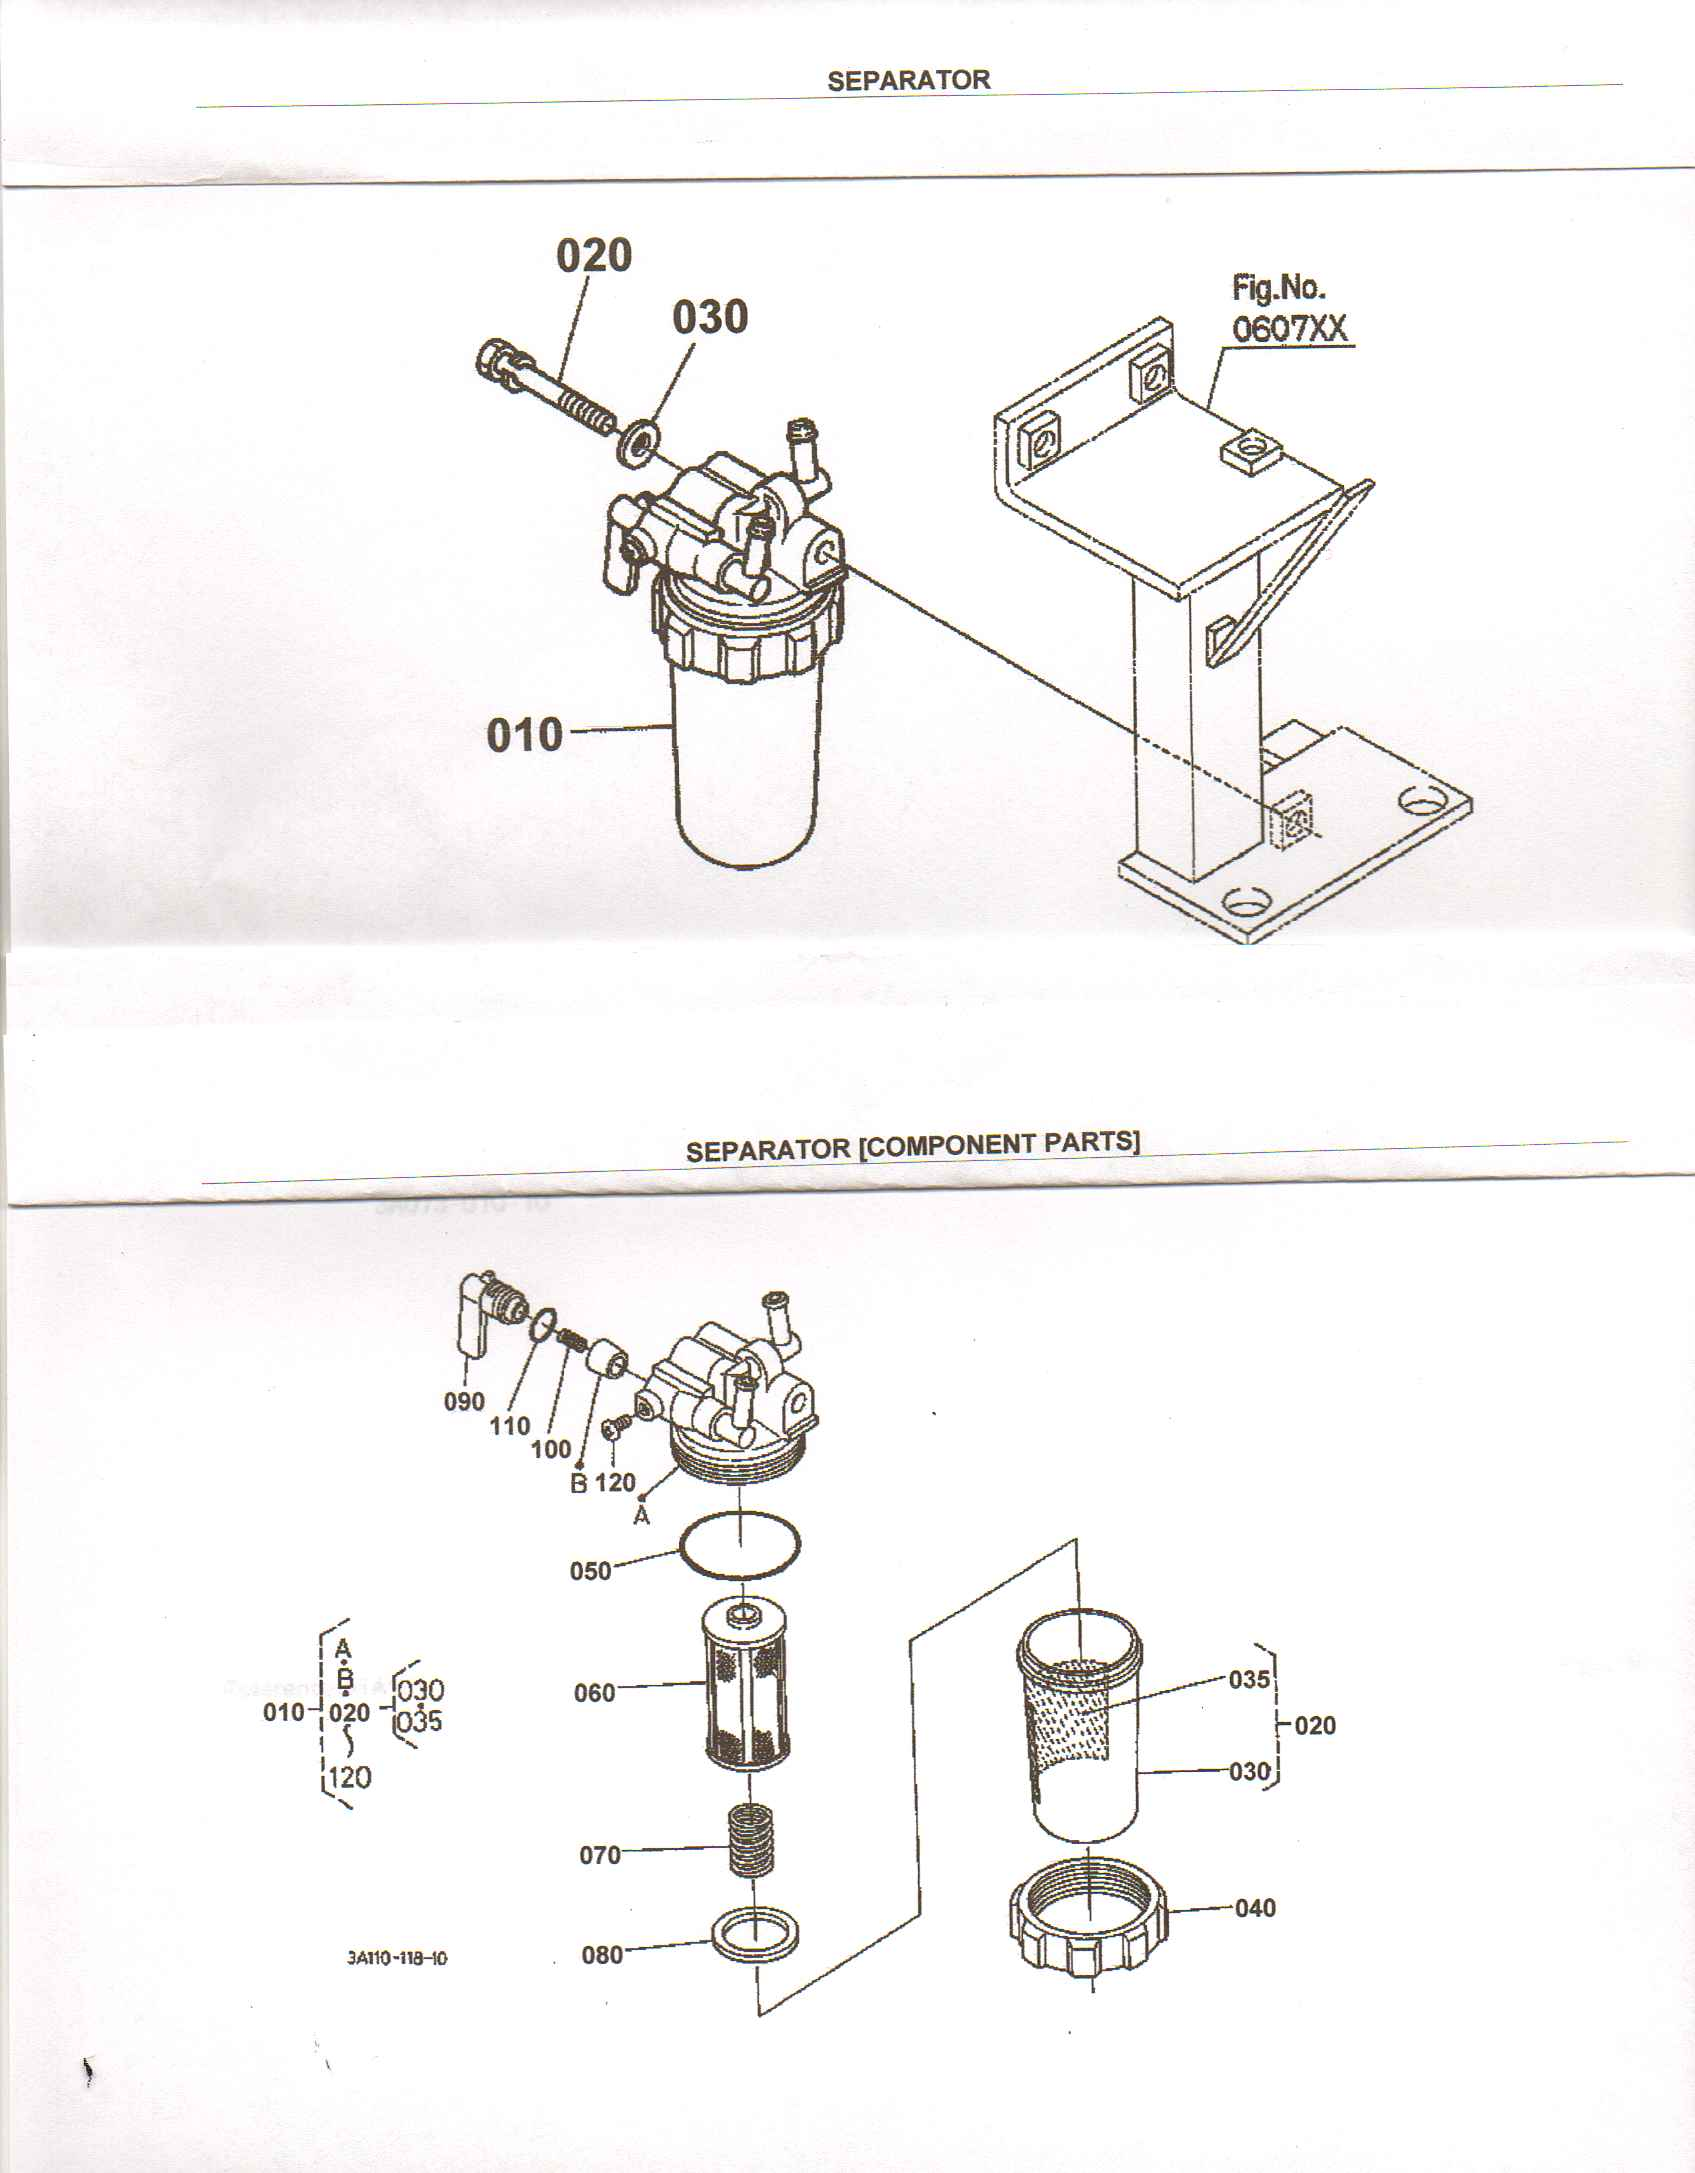 fuel shut off solenoid wiring diagram